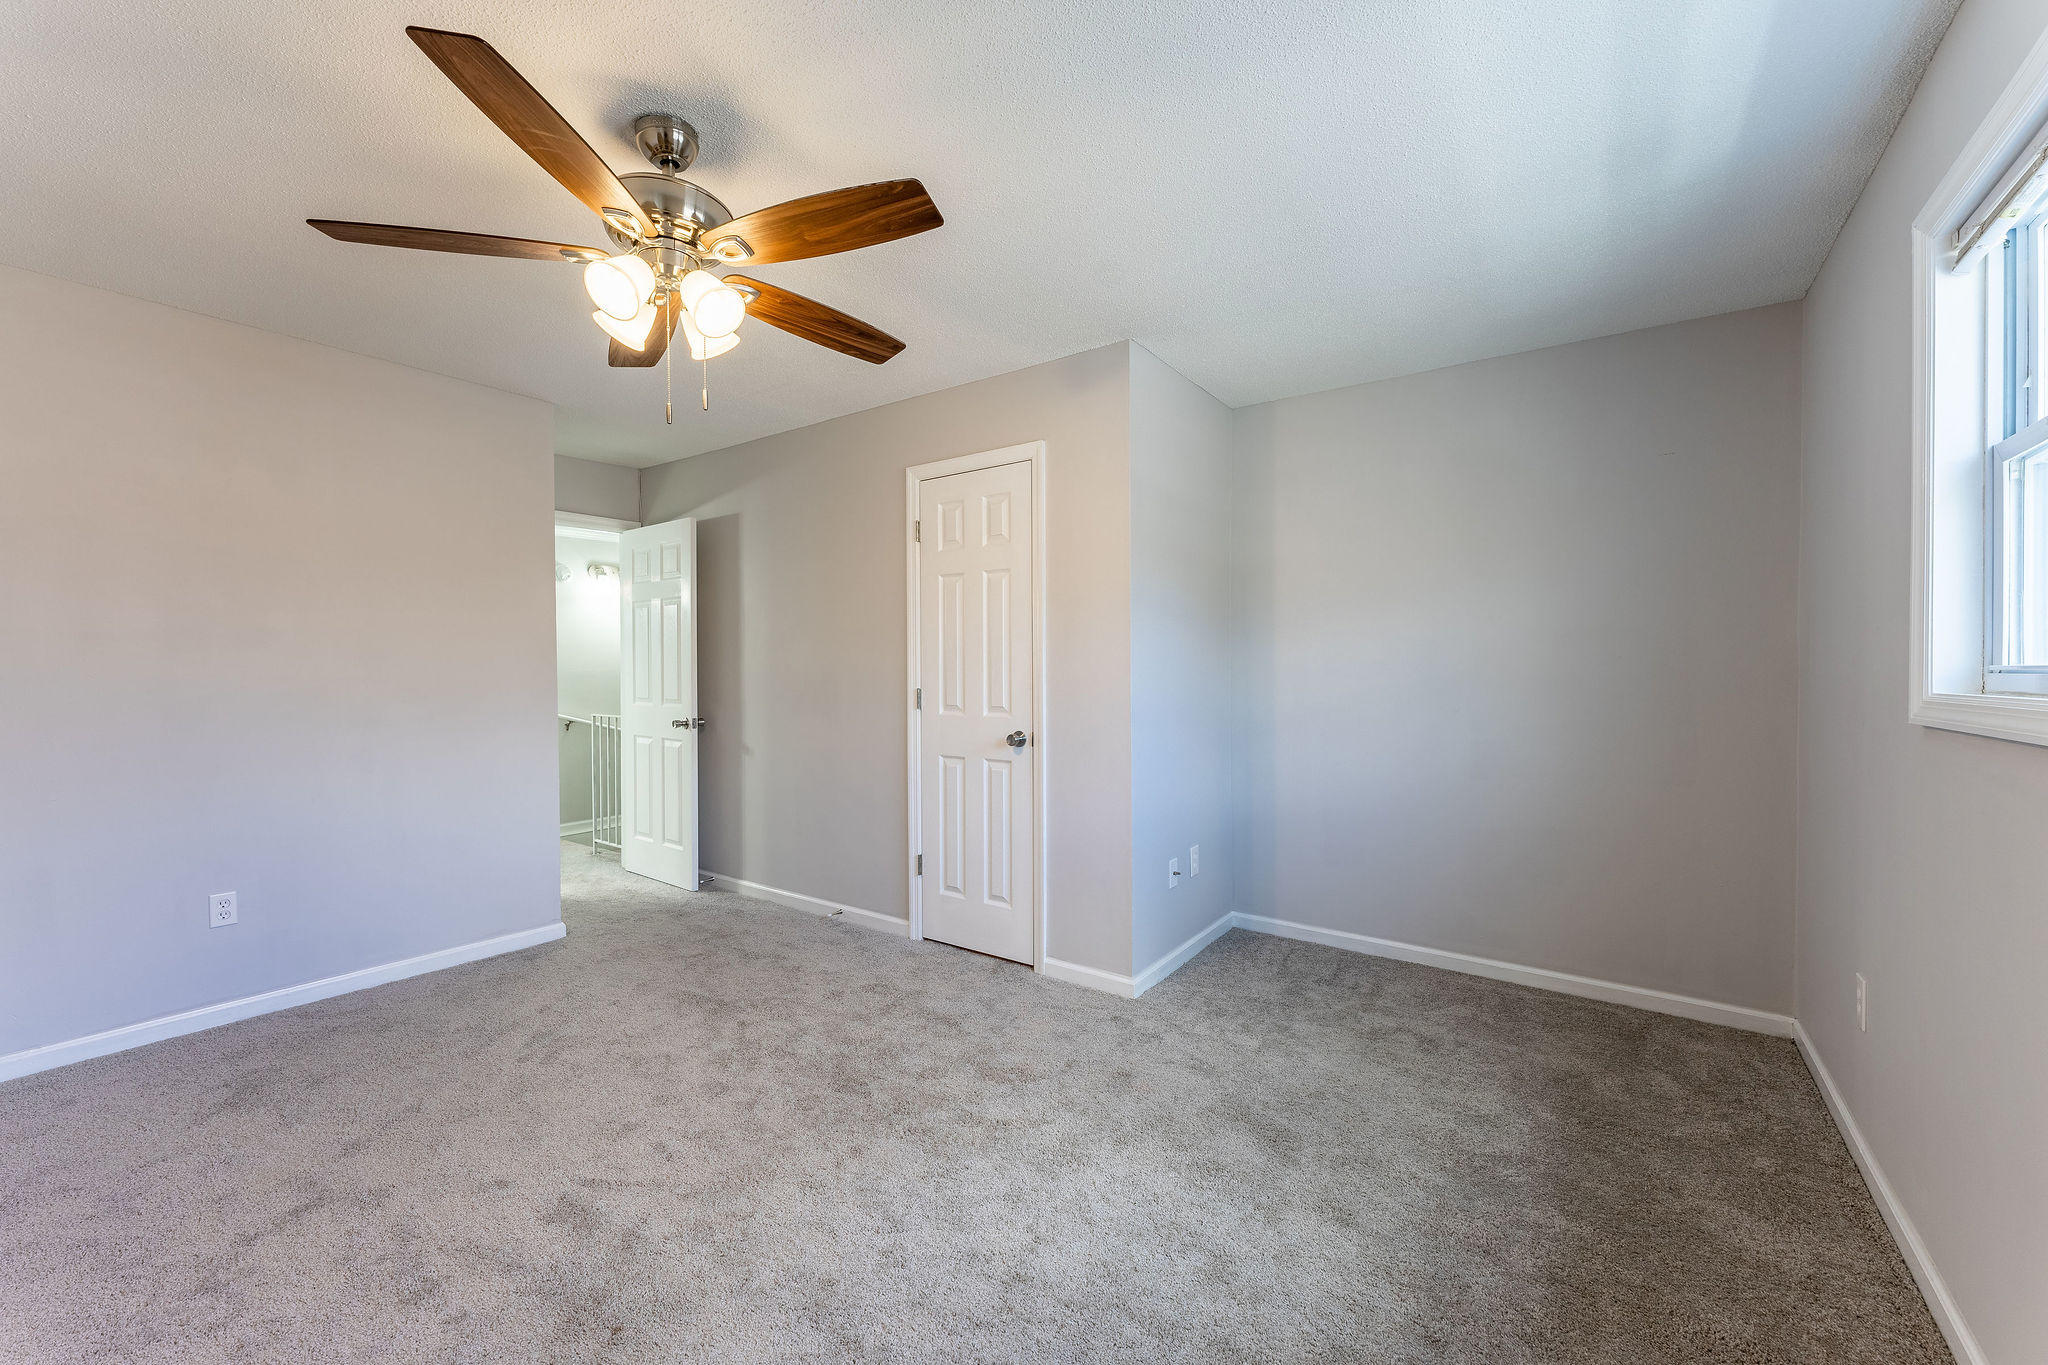 Mepkin Place Homes For Sale - 1713 Boone Hall, Charleston, SC - 2